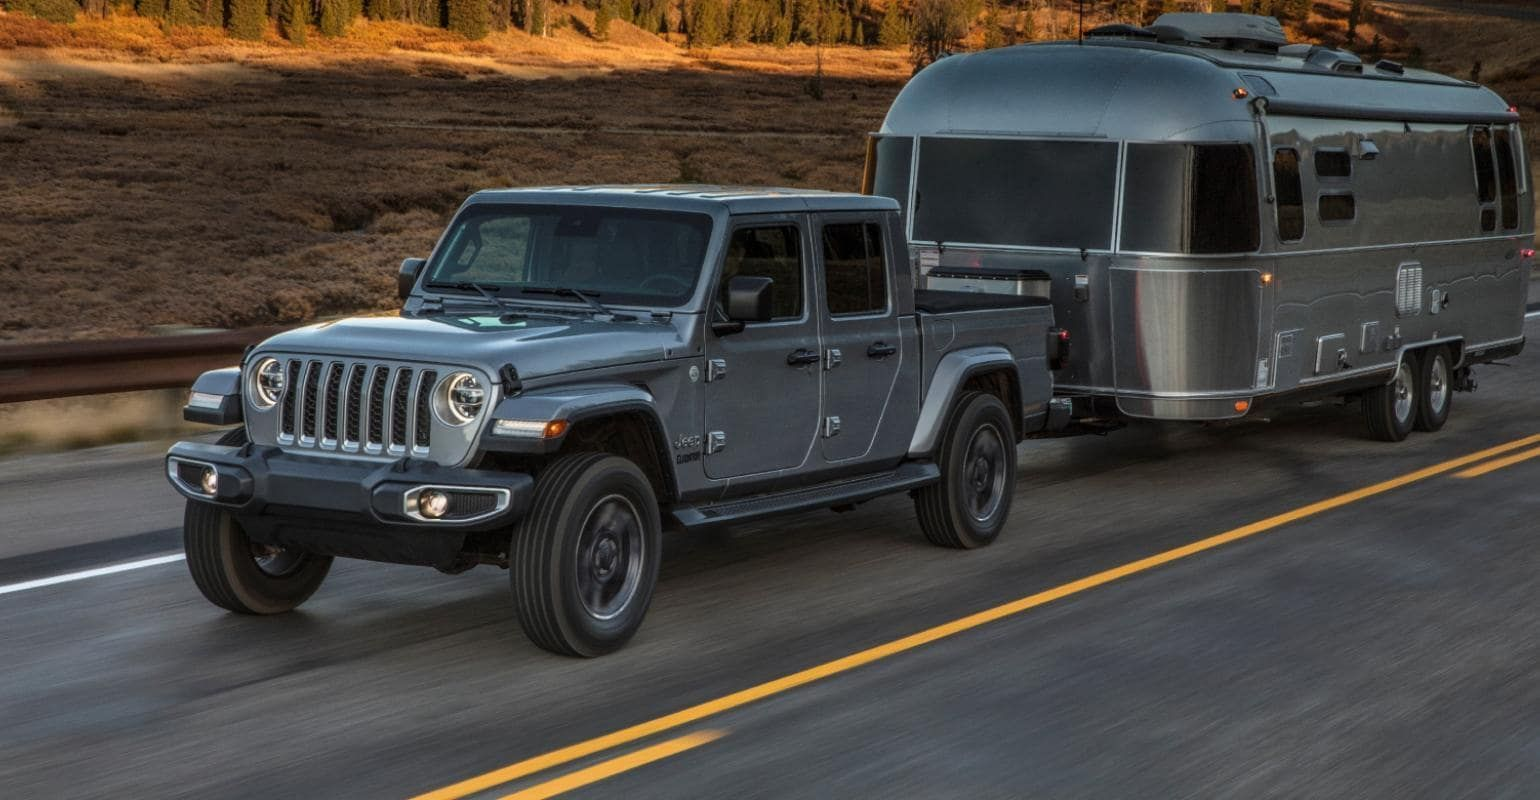 2020 Jeep Cherokee Towing Capacity With Images Jeep Gladiator Jeep Gladiator